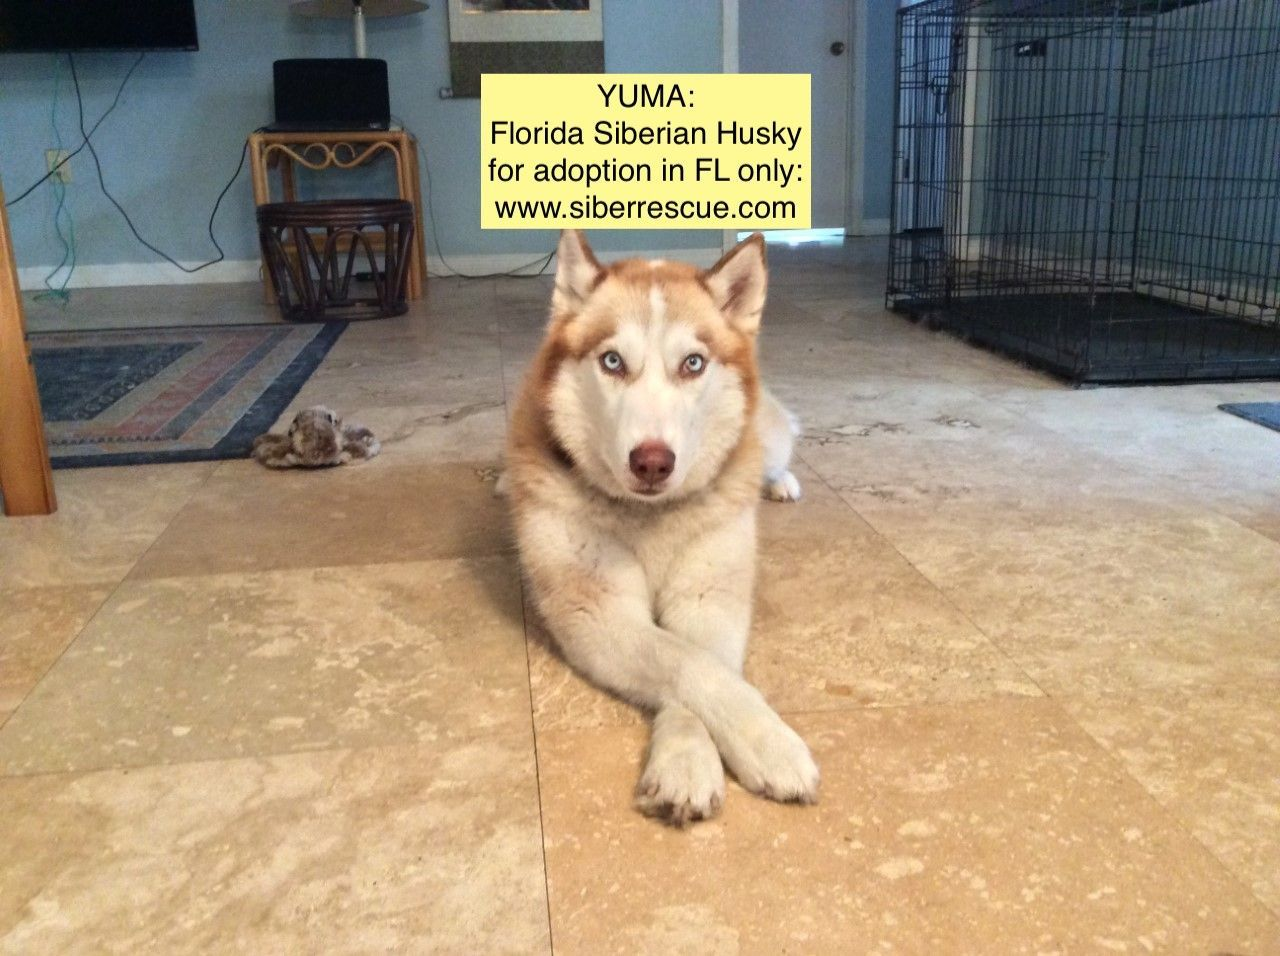 Florida Siberian Husky Rescue Has Beautiful Dogs For